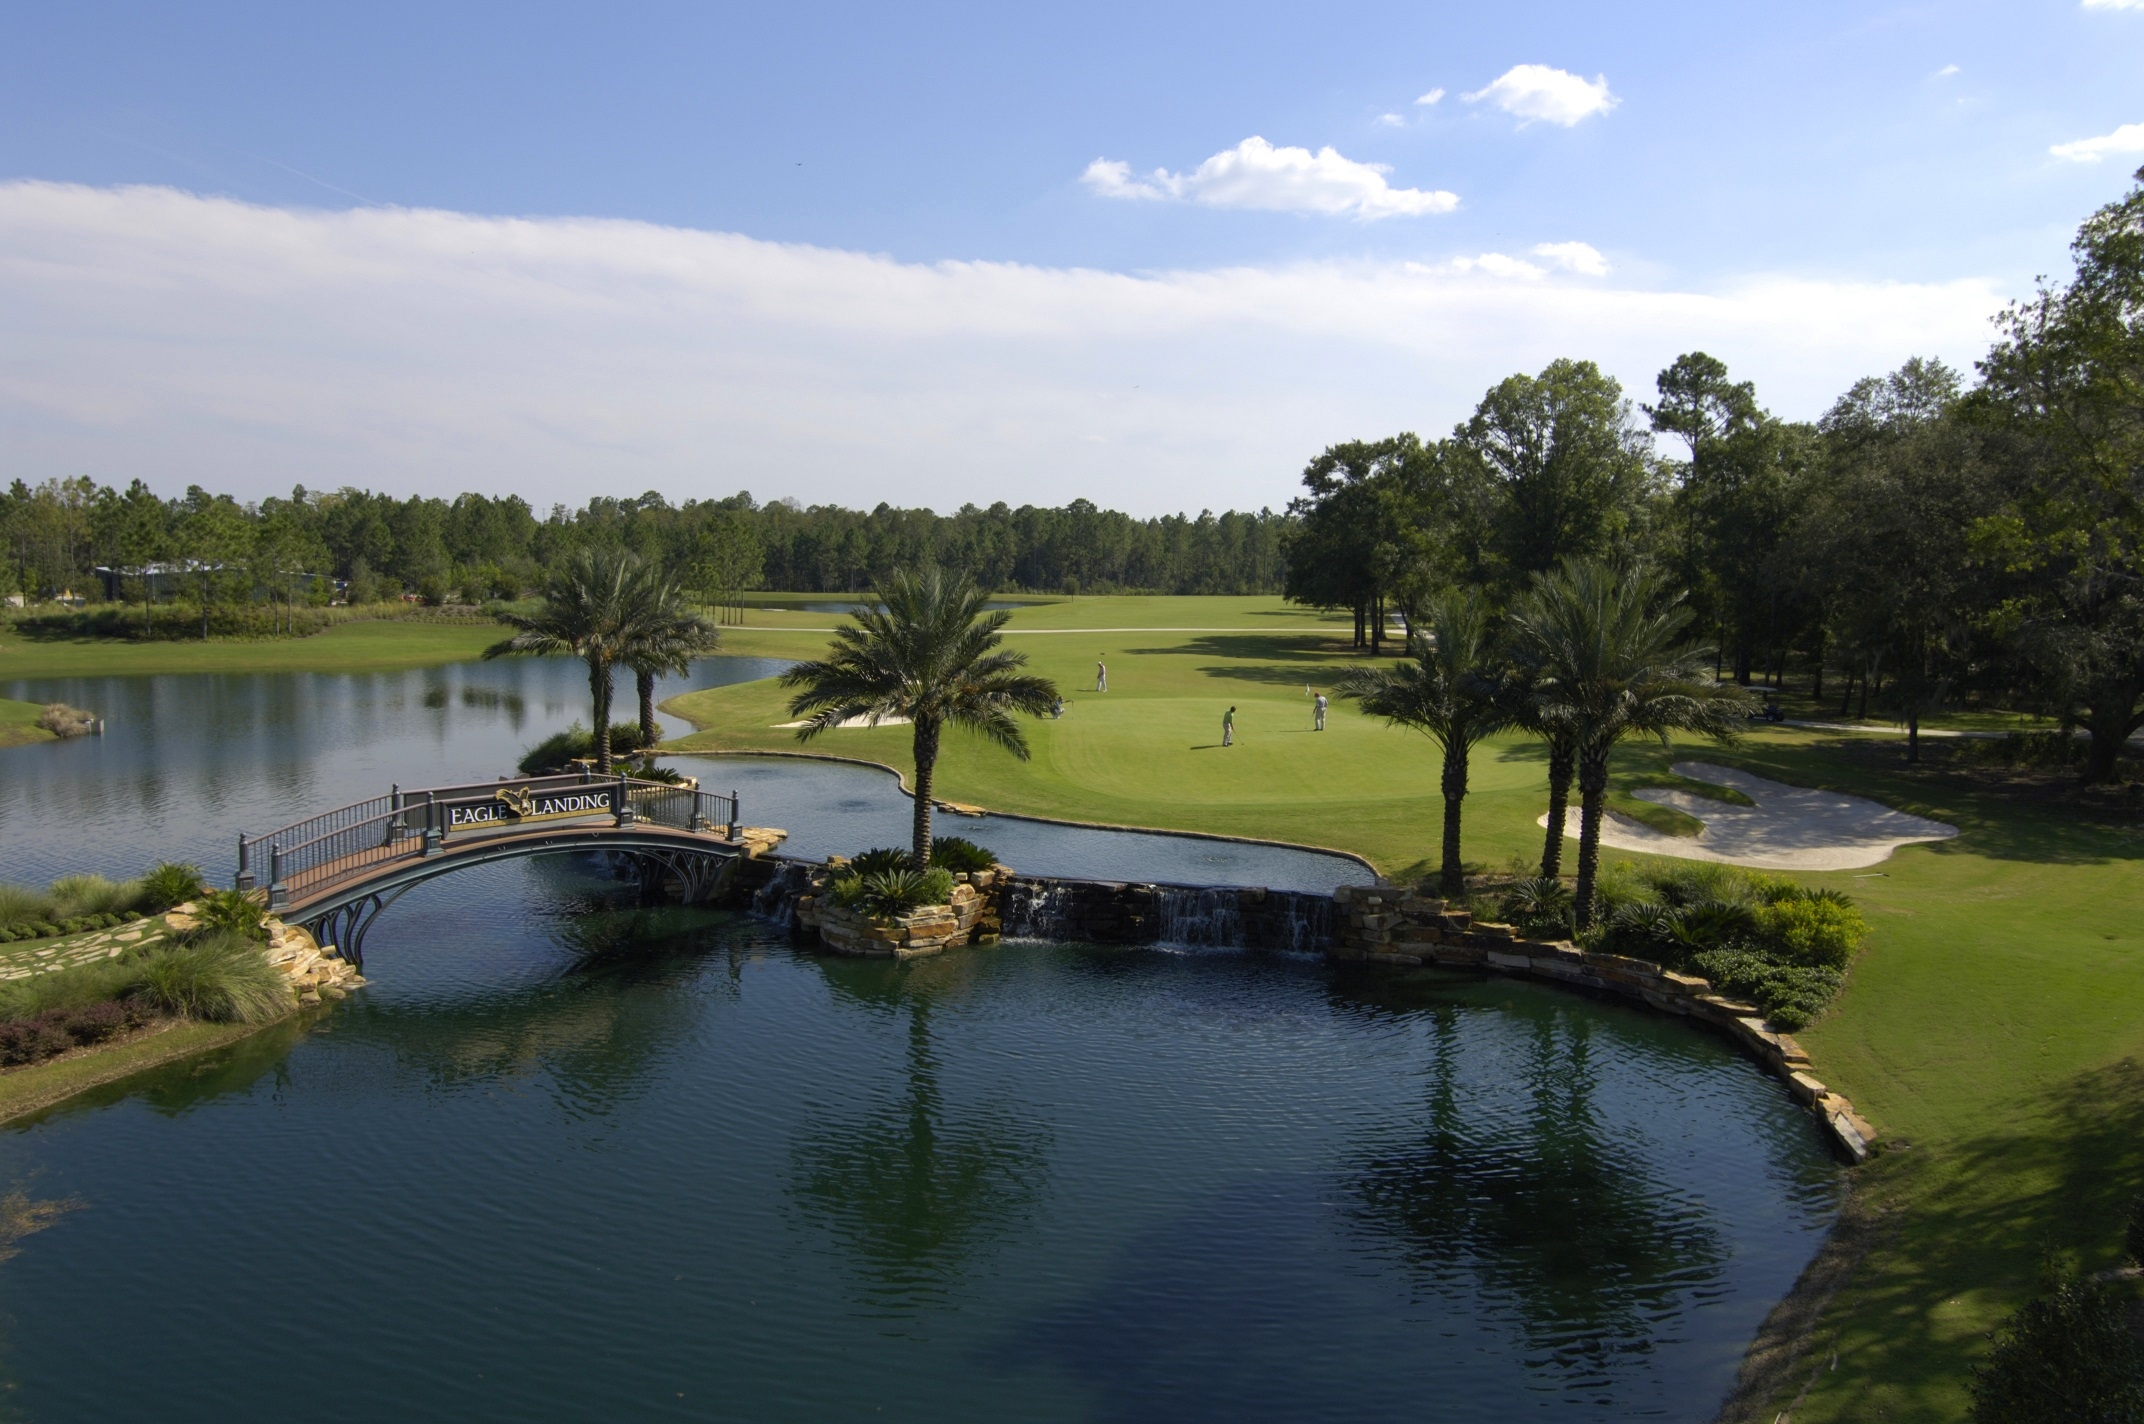 TROON'S HONOURS GOLF DIVISION SELECTED TO MANAGE  EAGLE LANDING AT OAKLEAF PLANTATION